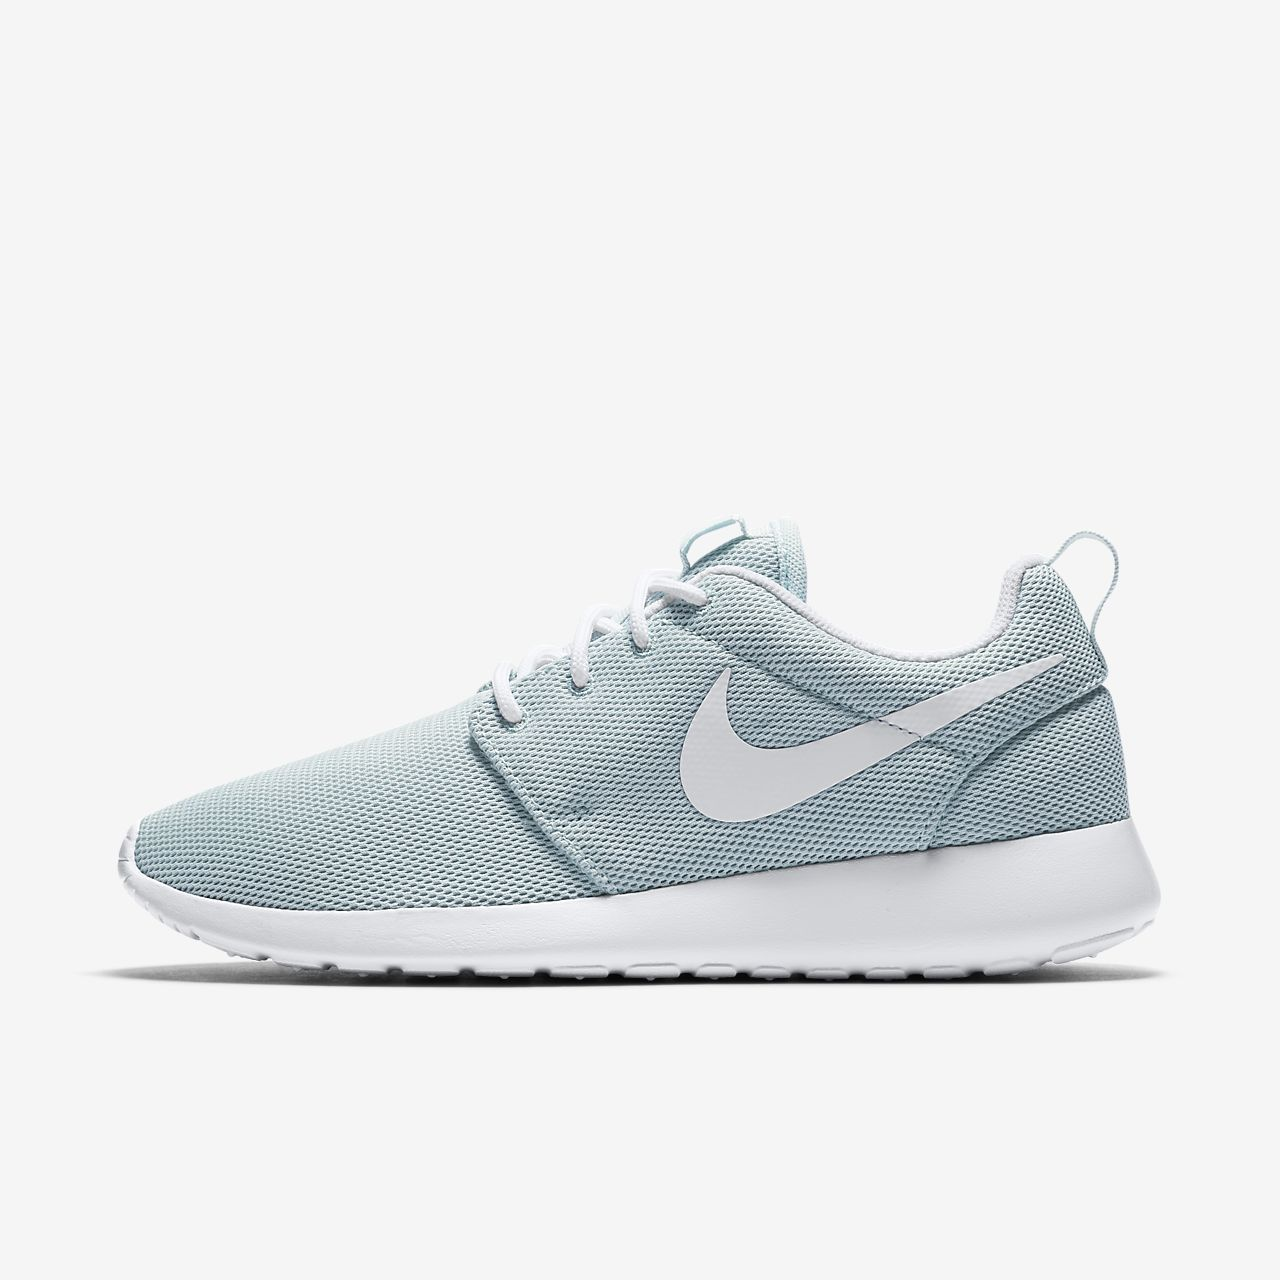 Anti-cold Nike Roshe Run 2 Women New Roshe Runs 2018 Nike Roshe Run 2018 Roshe Run New Nike Roshe Women's Shoes 75 Off Nike Roshe Outlet Store